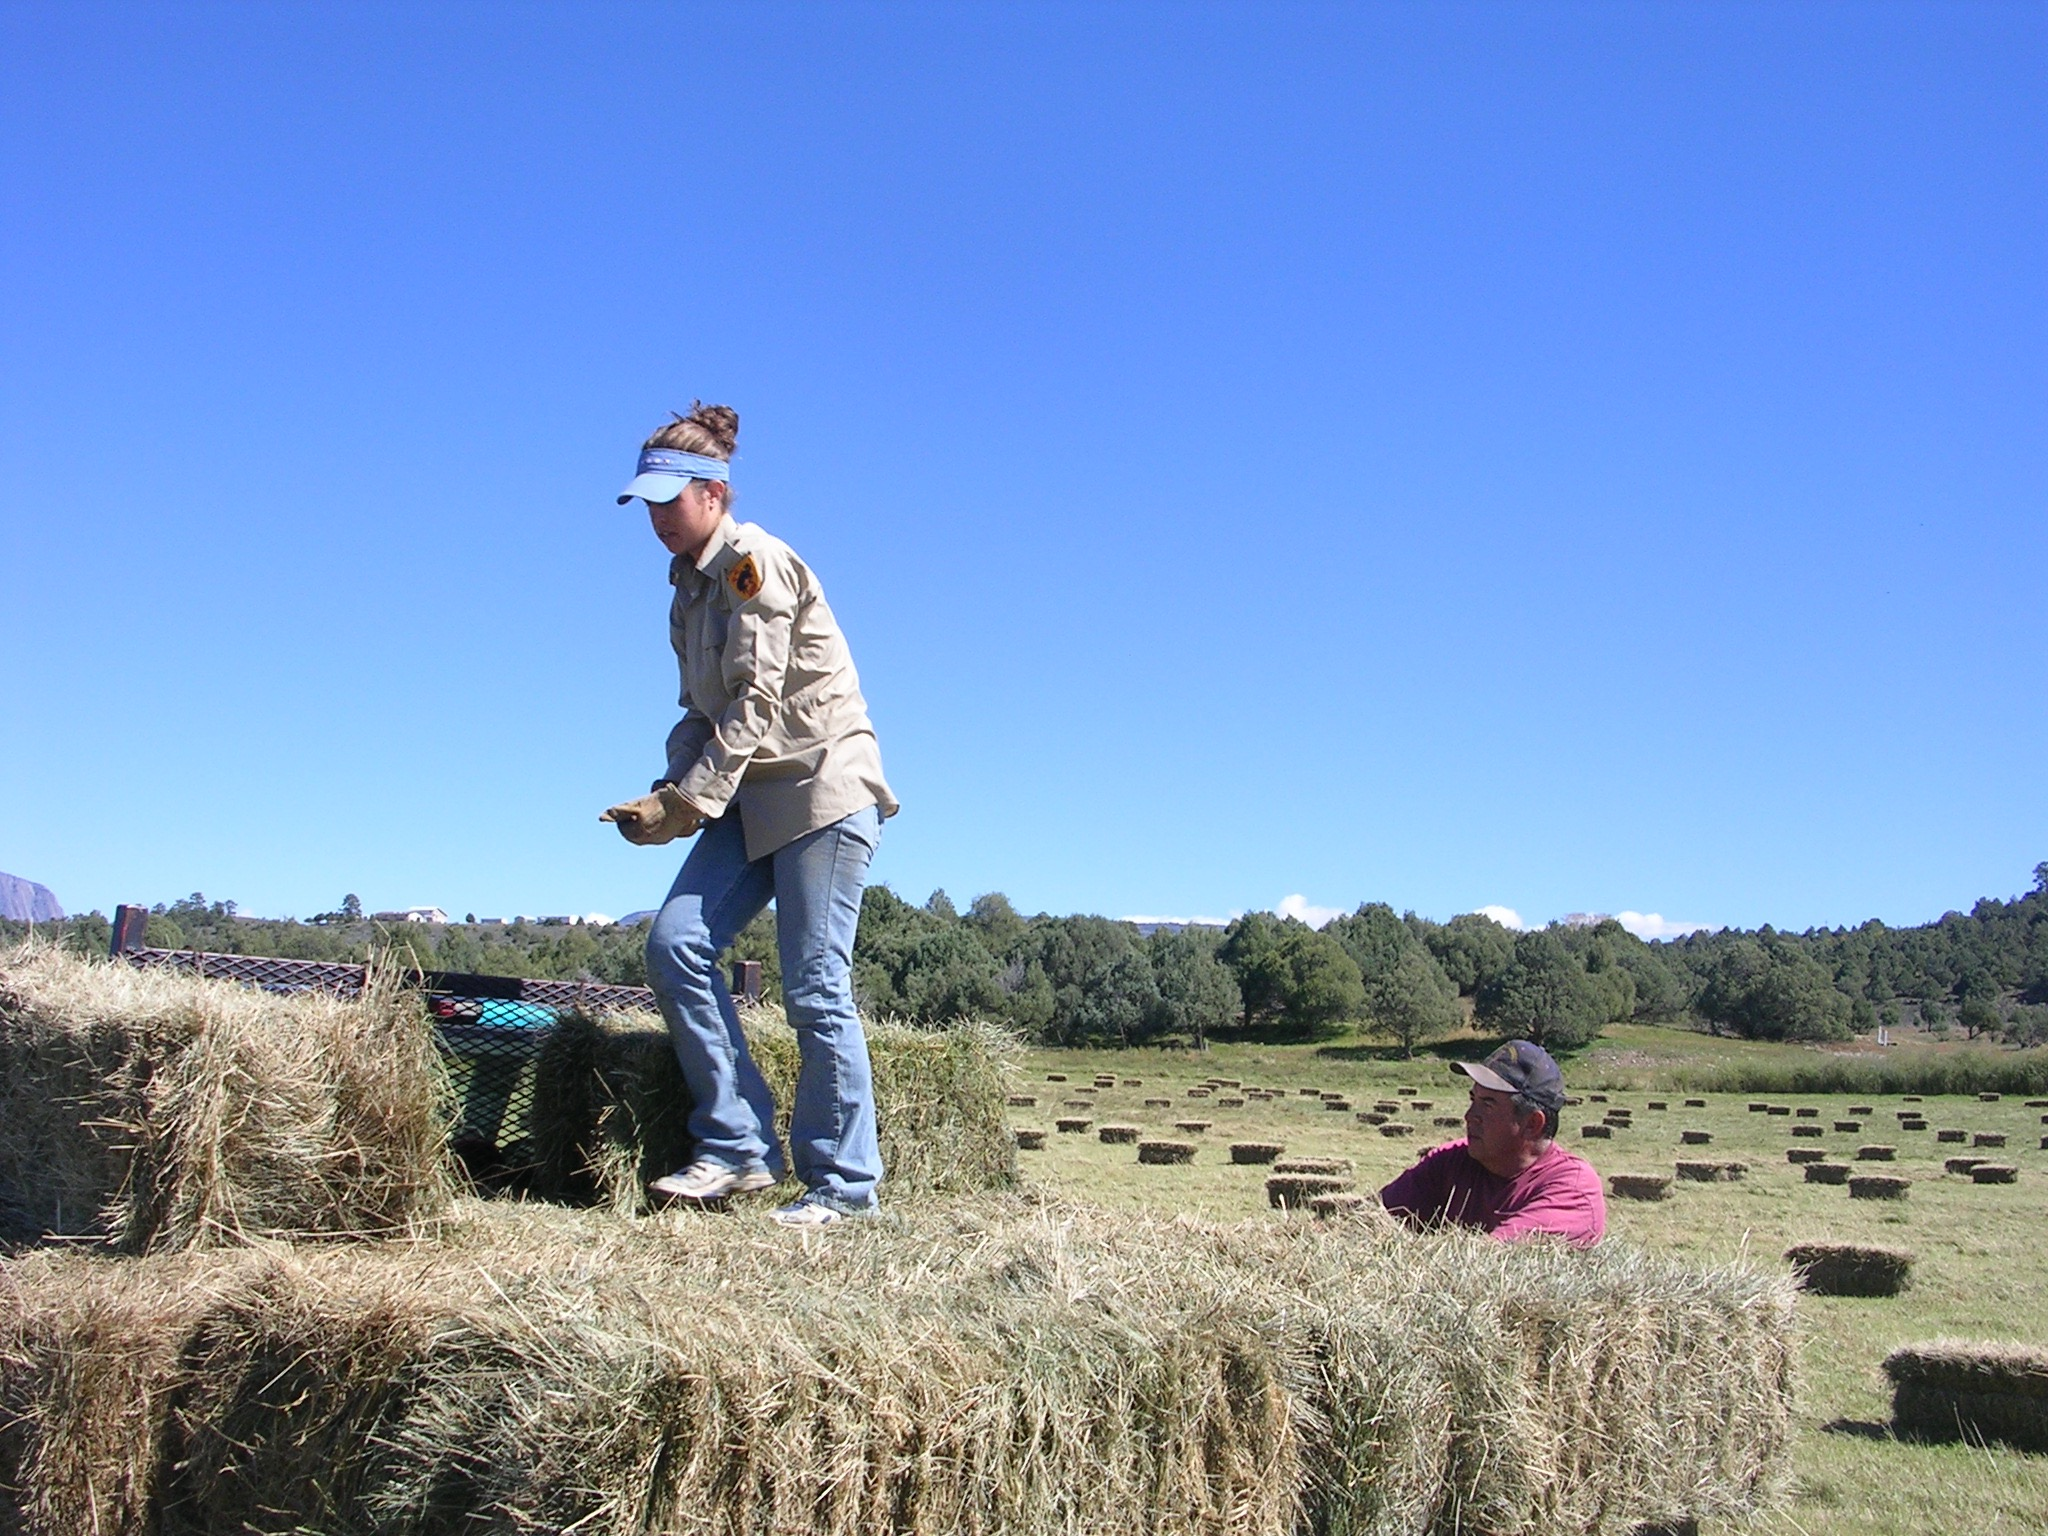 Lara and Antonio, picking up bales of hay to be stacked for winter feeding.